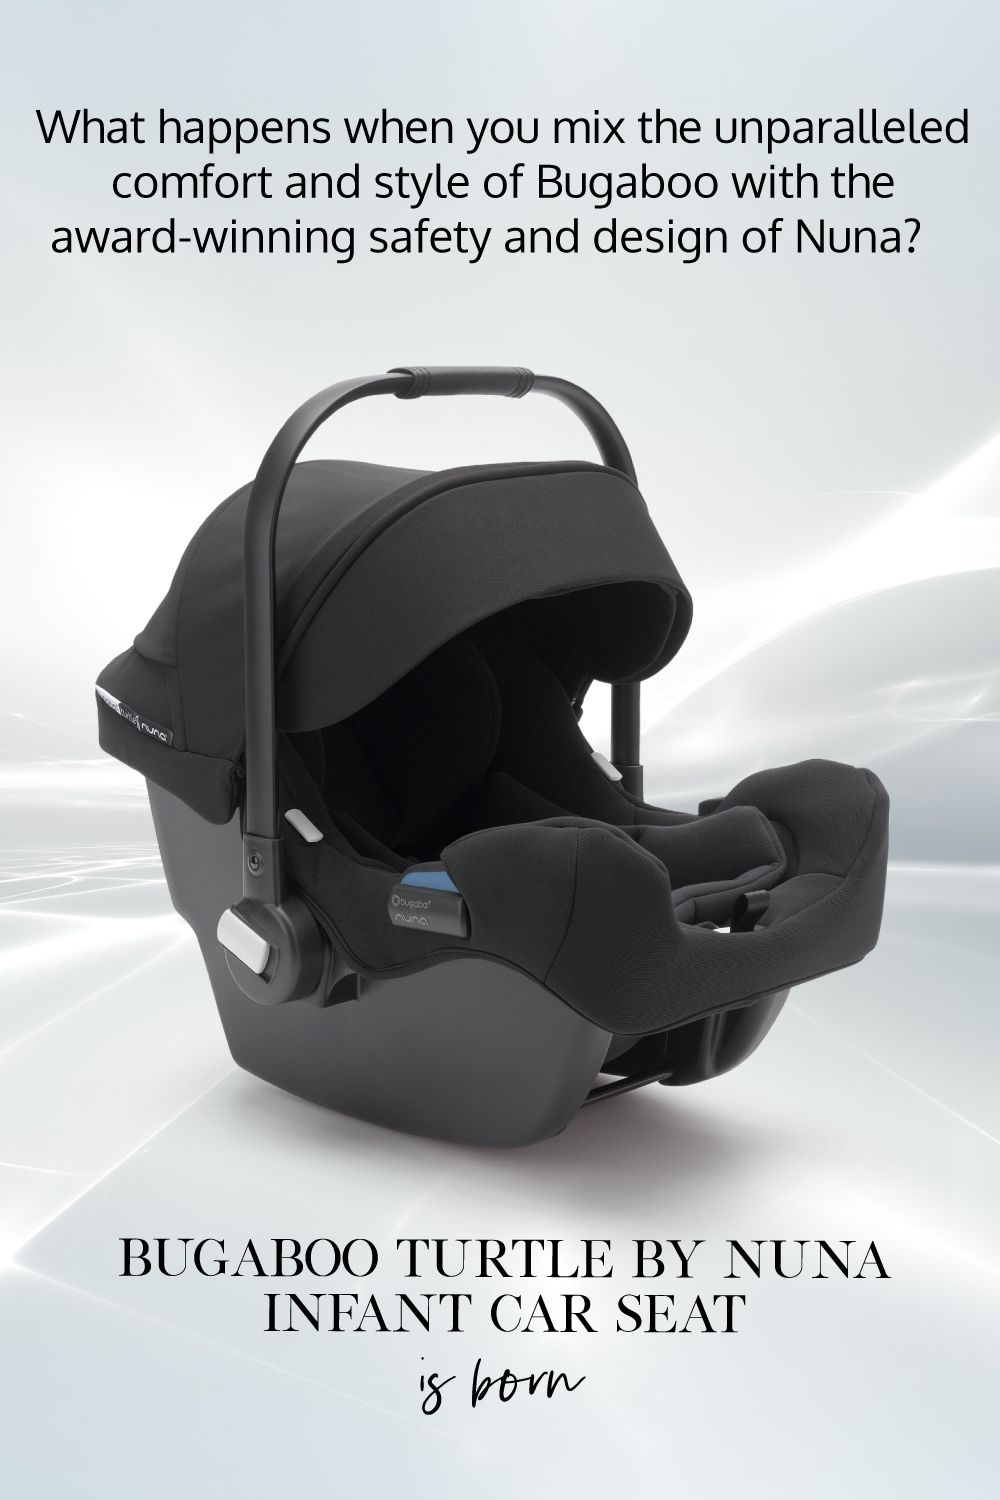 Bugaboo Turtle by Nuna Infant Car Seat and Base Car